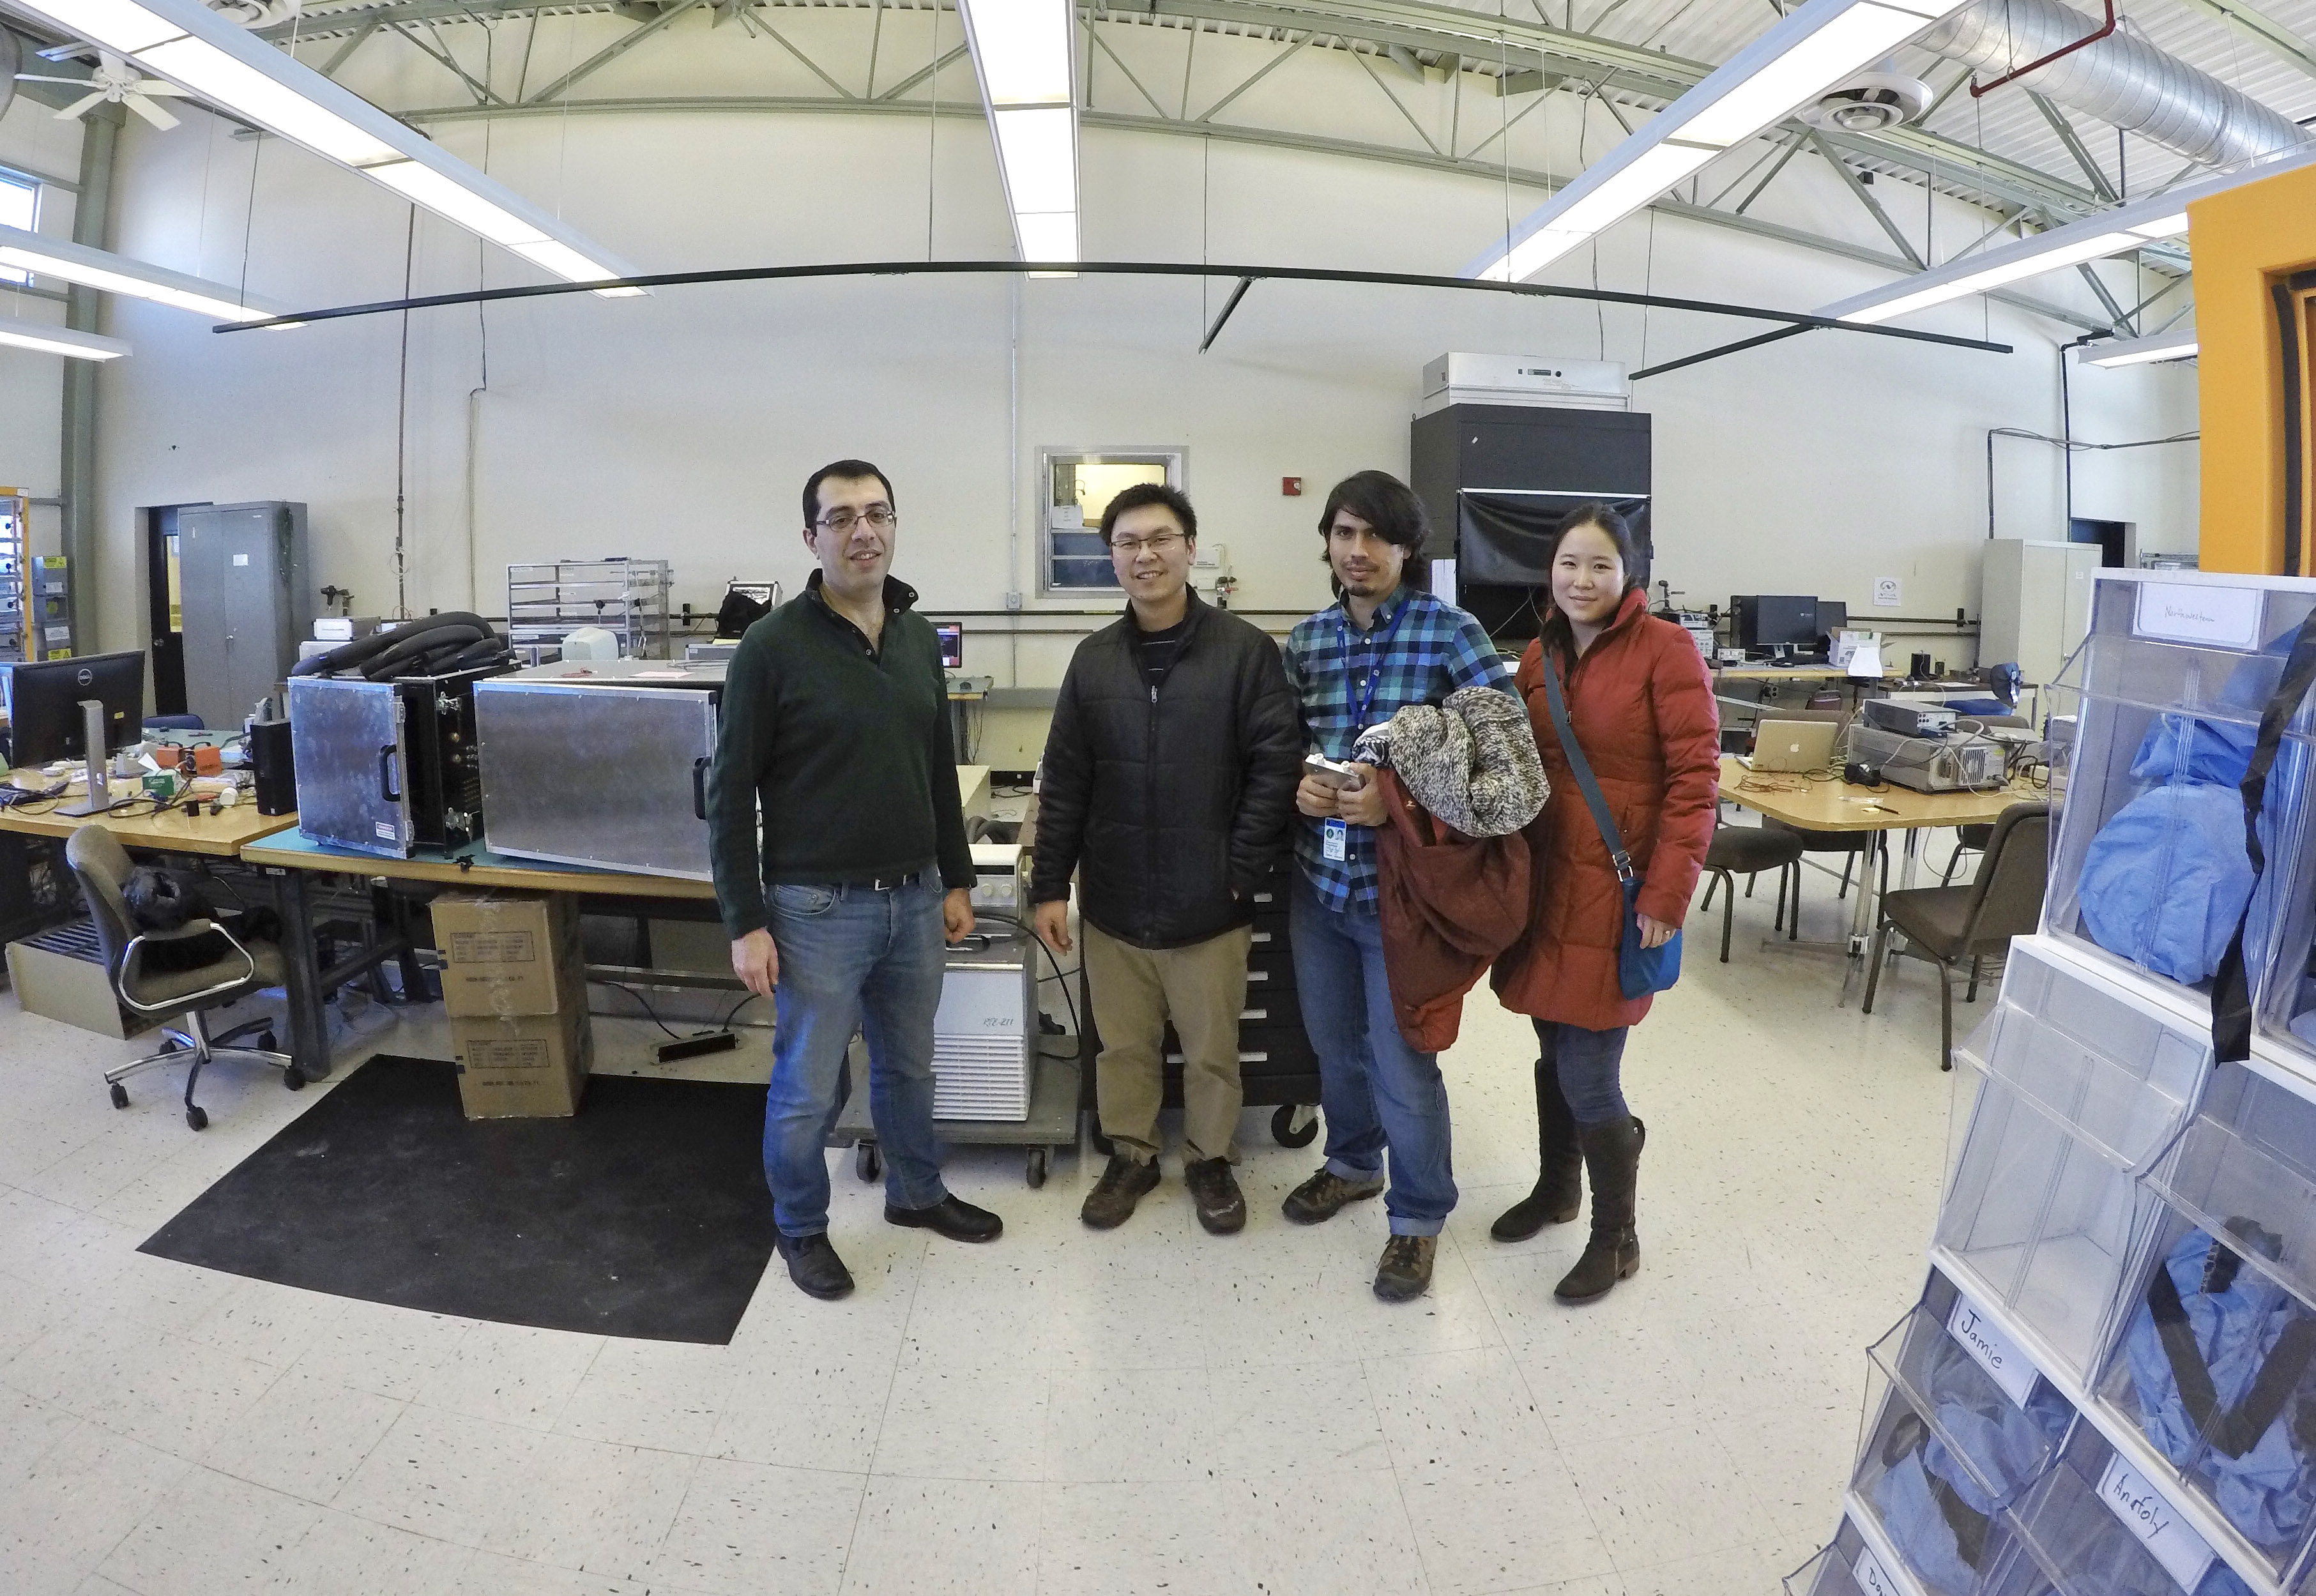 Starting from left: Artur Apresyan of the Particle Physics Division Detector Development and Operations Department; Cristian Pena, a Lederman Fellow with Fermilab; and Si Xie and Yewon Gim, visitors from California Institute of Technology, are in the SiDet Detector Test Area discussing quantum teleportation for the Fermilab Quantum Network (FQNET) experiment. Photo taken with a GoPro Hero4 in February. Photo: Leticia Shaddix, people